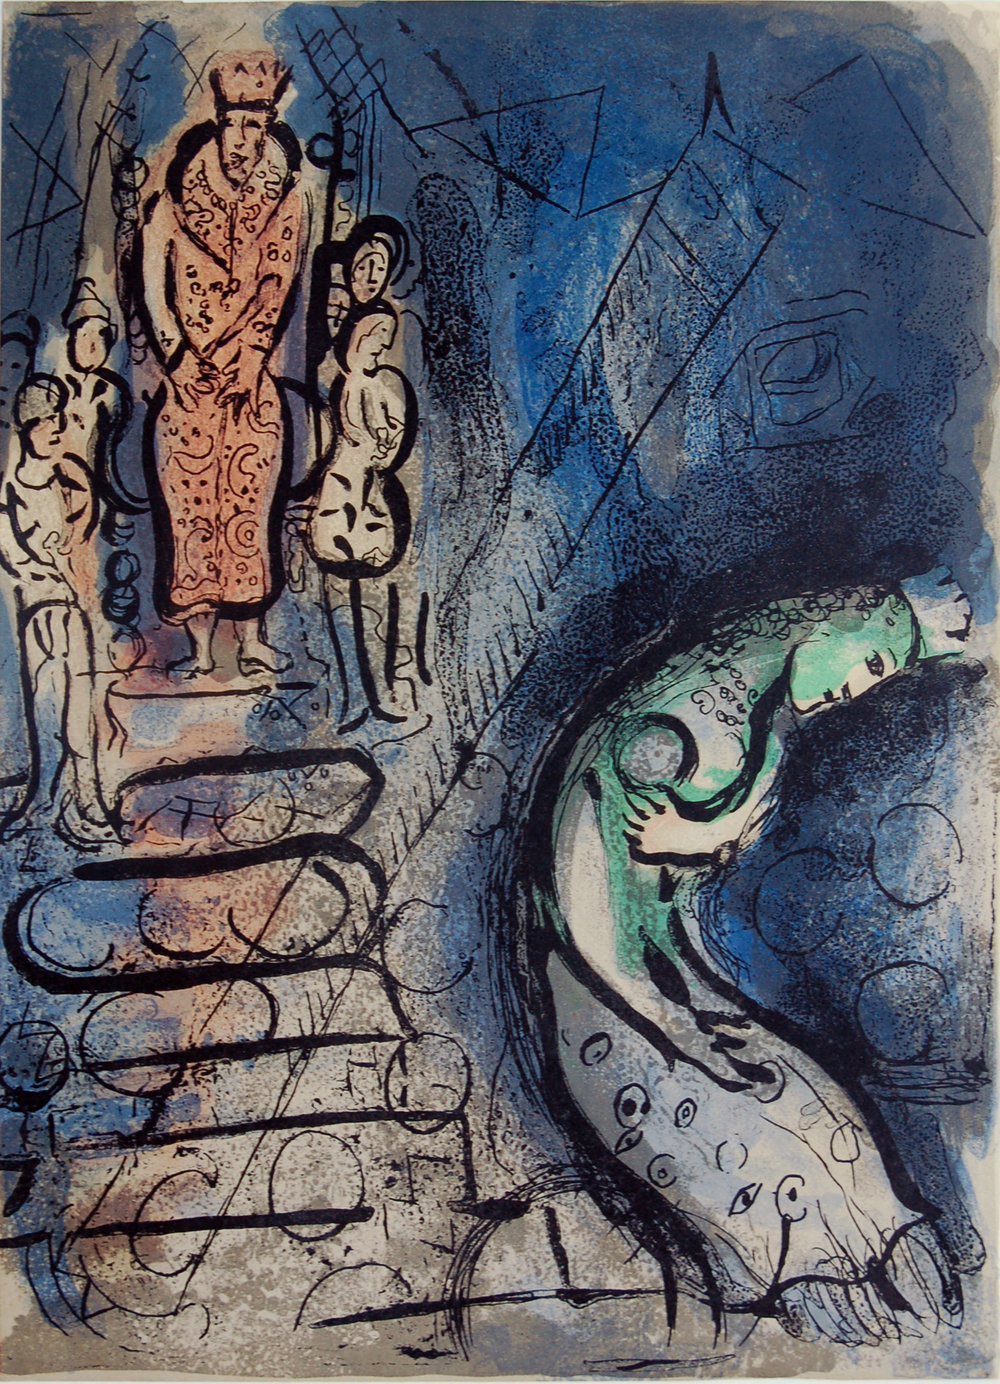 M Chagall | Ahasuerus Banishes Vashti | Lithograph, © 2018 Artists Rights Society (ARS), New York / ADAGP, Paris